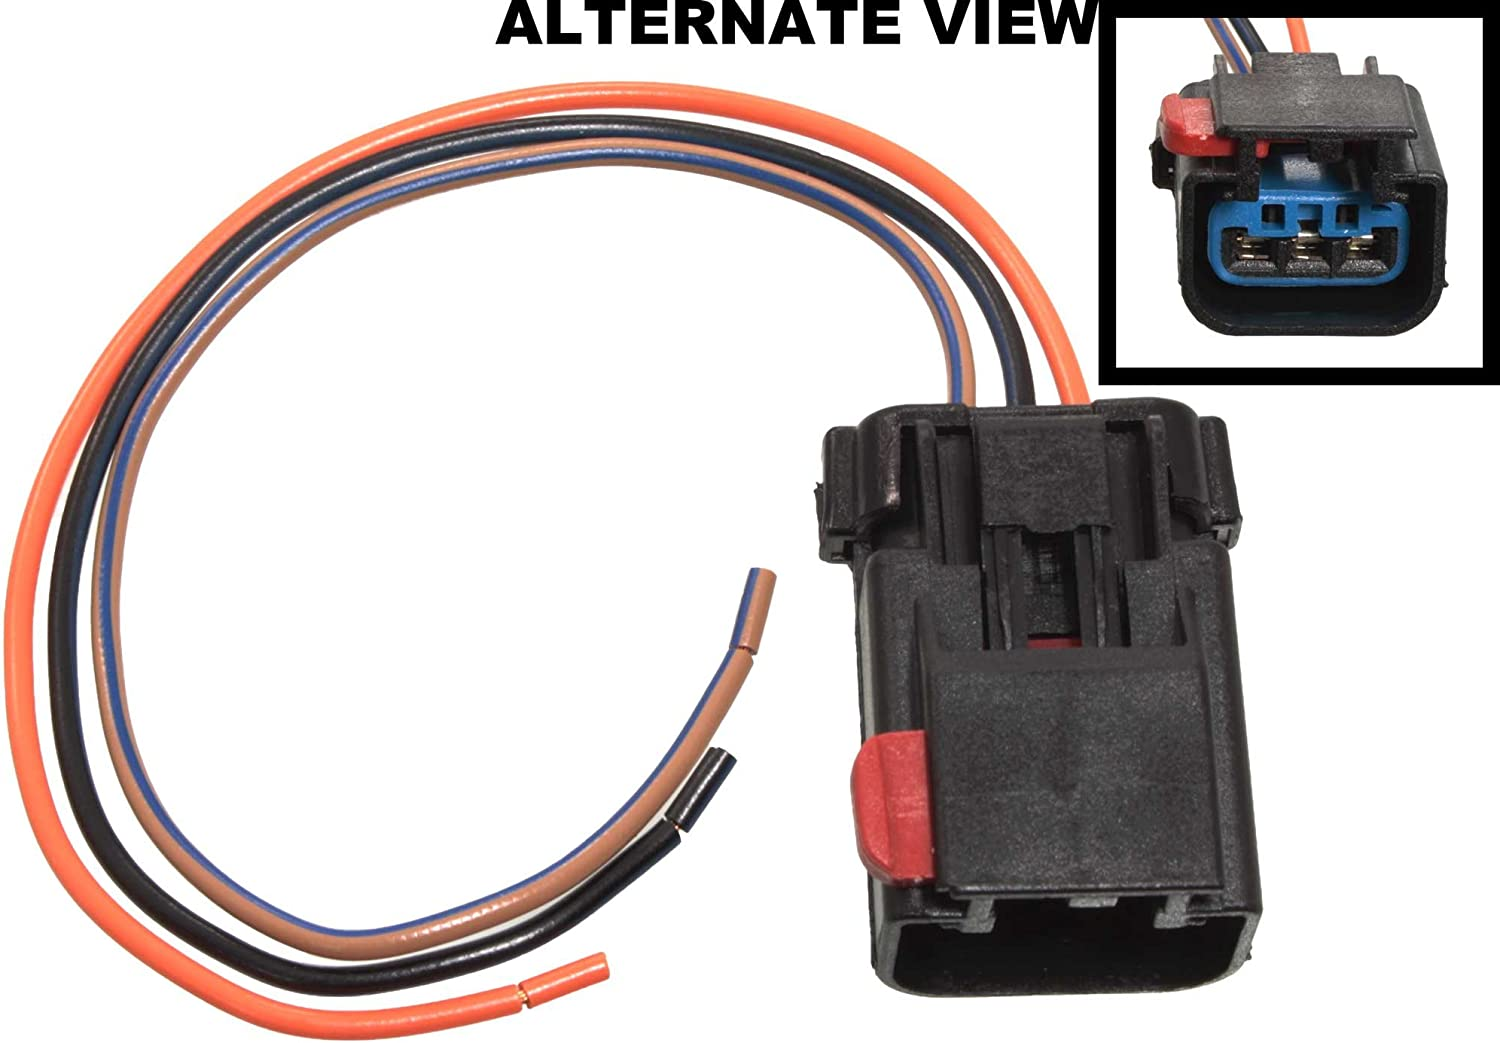 Amazon.com: APDTY 756298 Wiring Harness Pigtail Connector 3-Wire Direct Fit  Cam Crank Sensor Power Window High Low Horn Wiper HVAC AC Heat Auto Temp  Control Power Mirror Compass Hybrid Turn Signal ParkAmazon.com